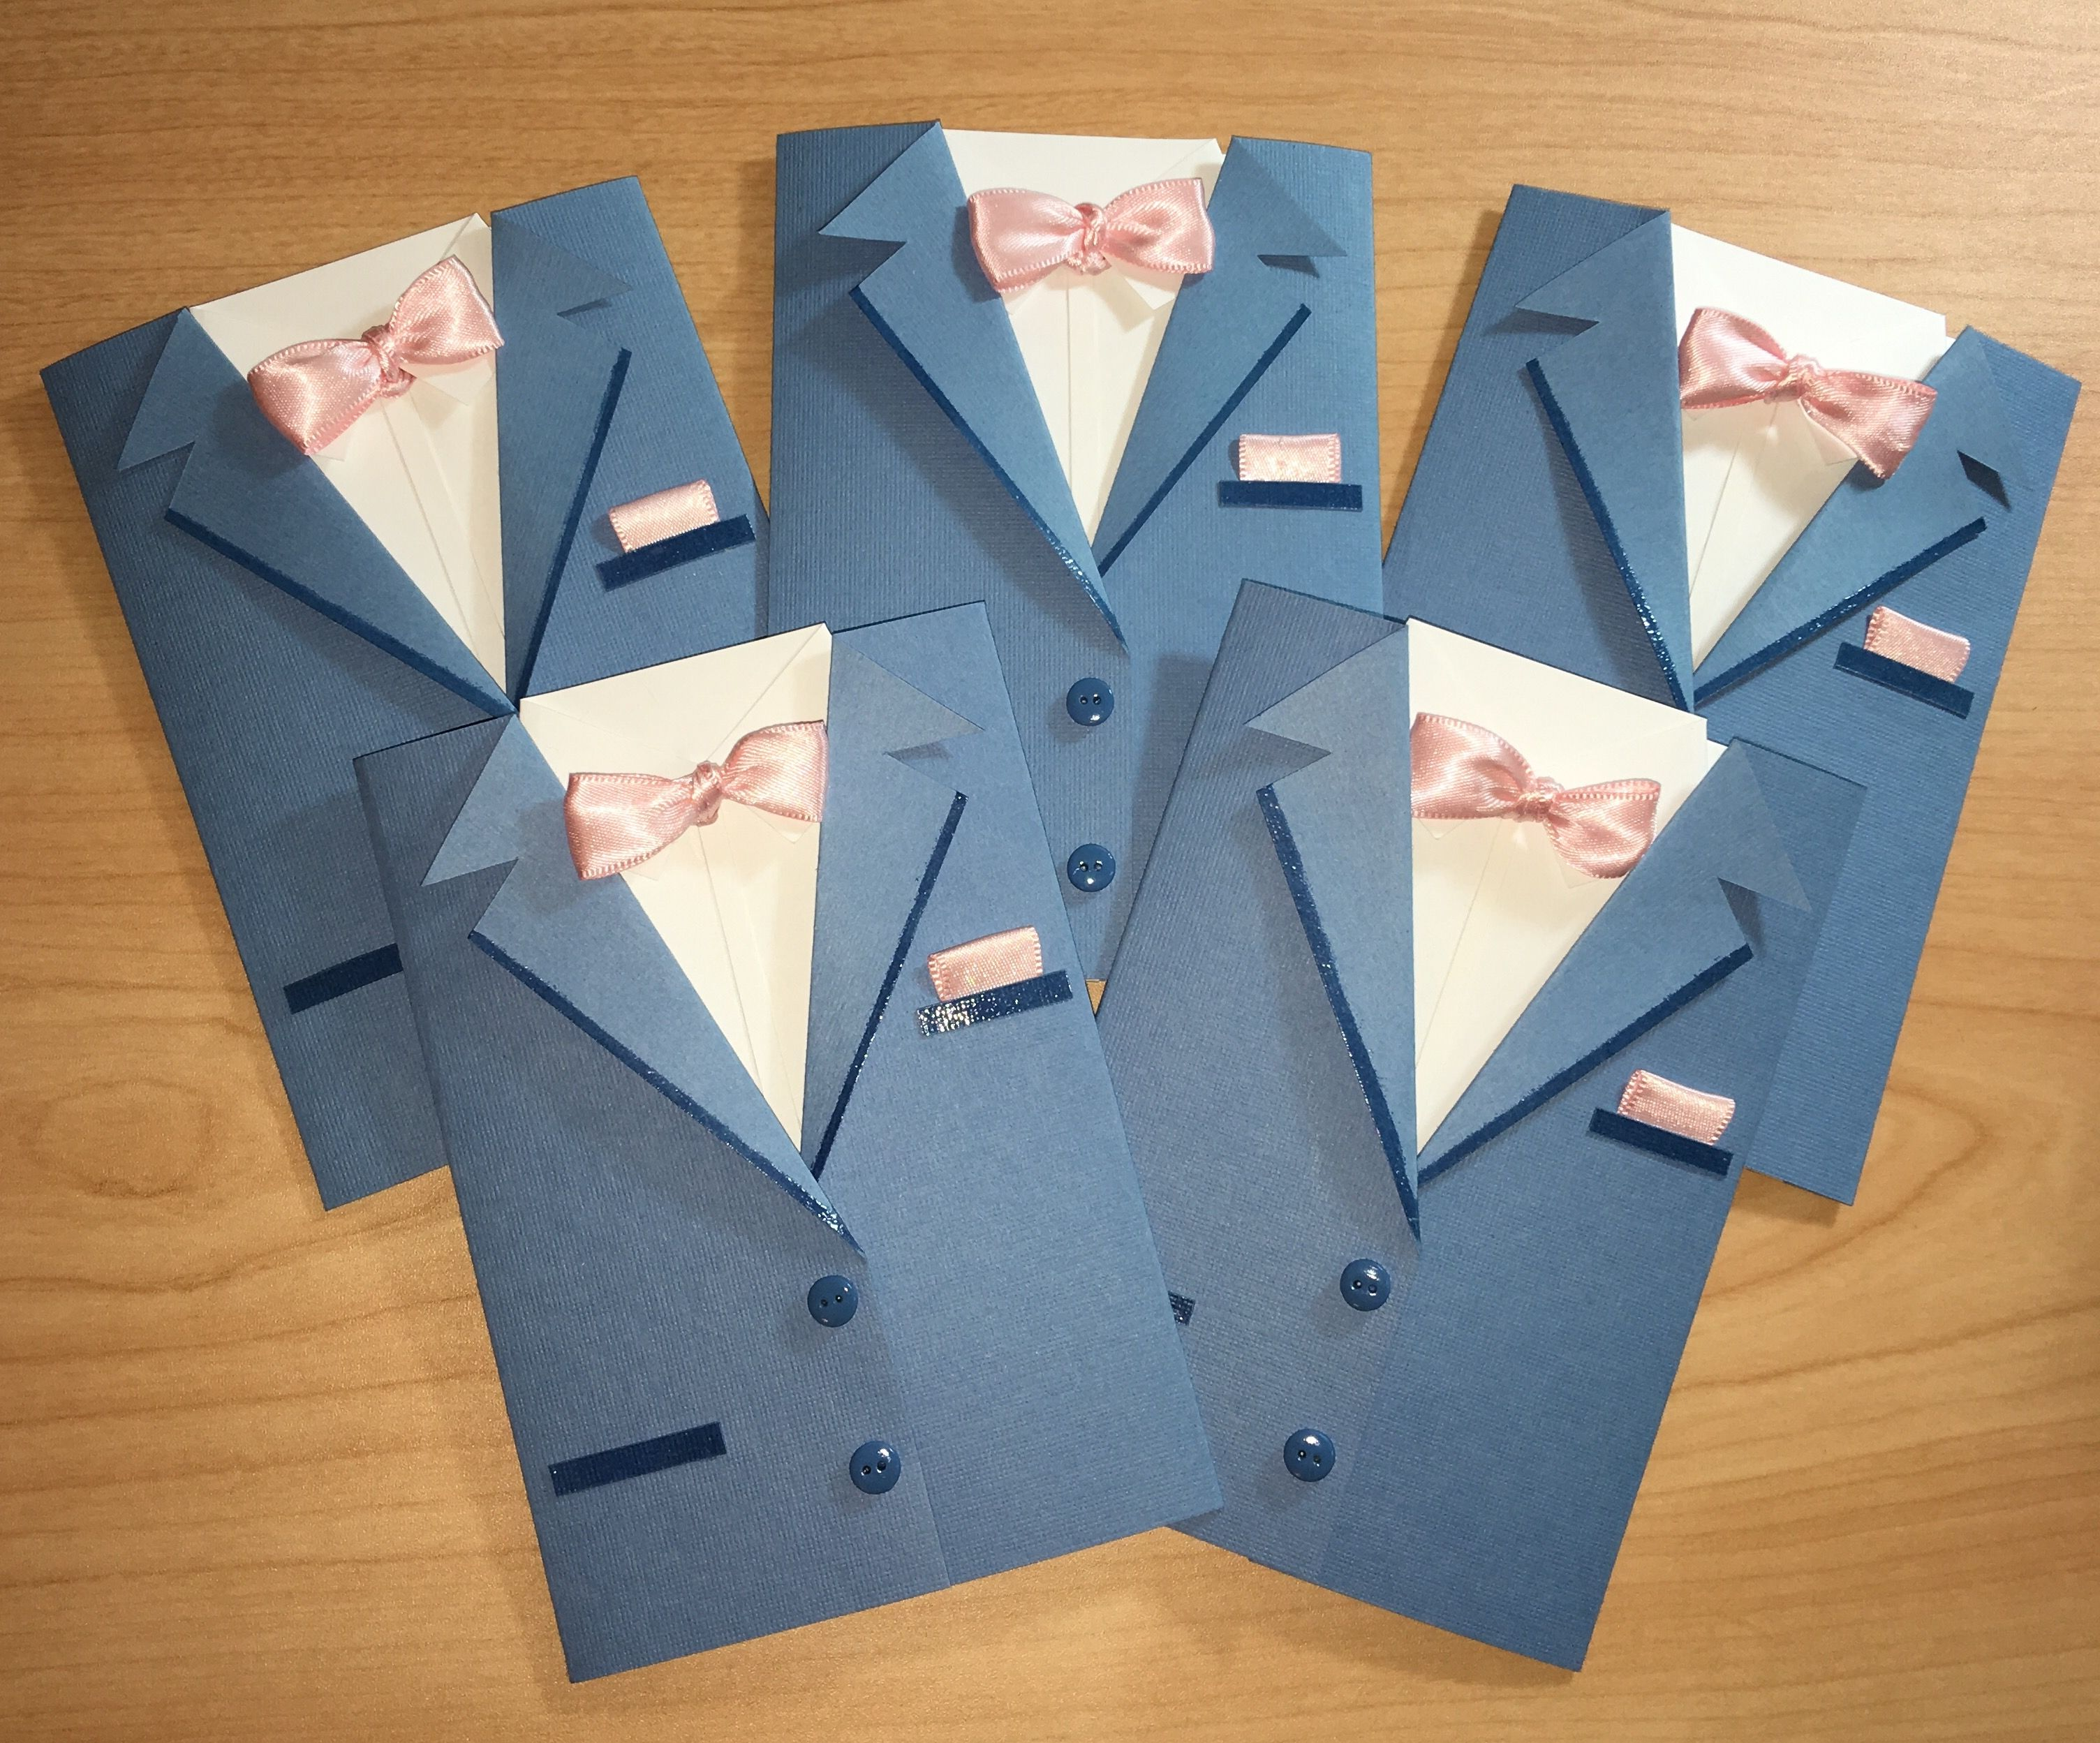 Handmade Custom Groomsman Suit Invites A2 Size Greeting Cards Sky